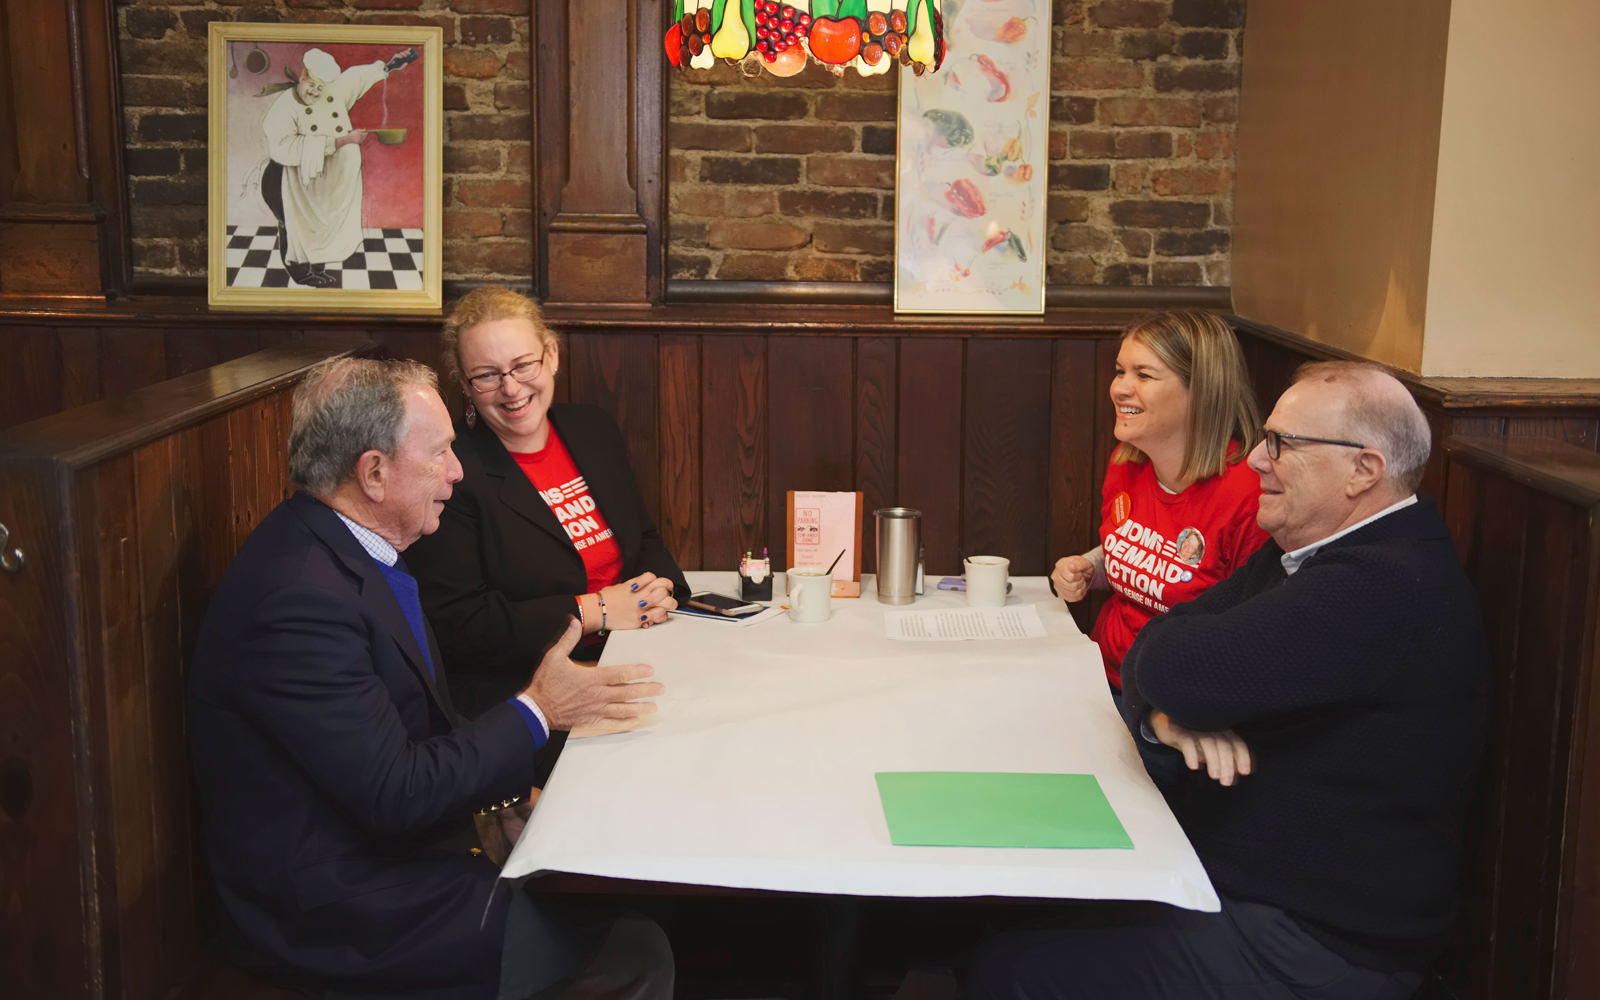 Meeting with Moms Demand Action for Gun Safety volunteers in Pittsburgh, Pennsylvania, with Everytown President John Feinblatt.